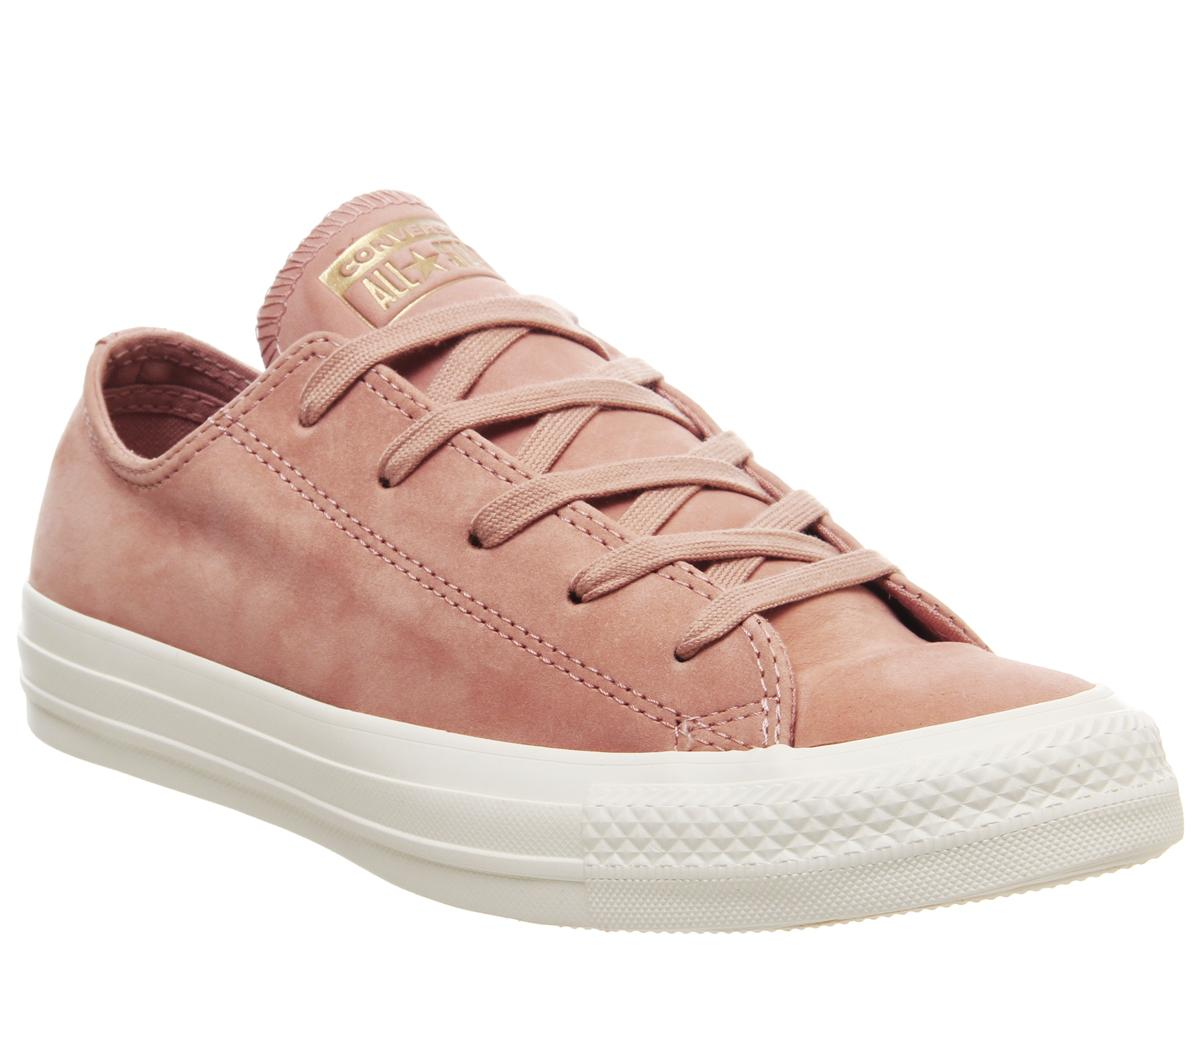 Converse Allstar Low Leather Trainers Rose Gold Egret